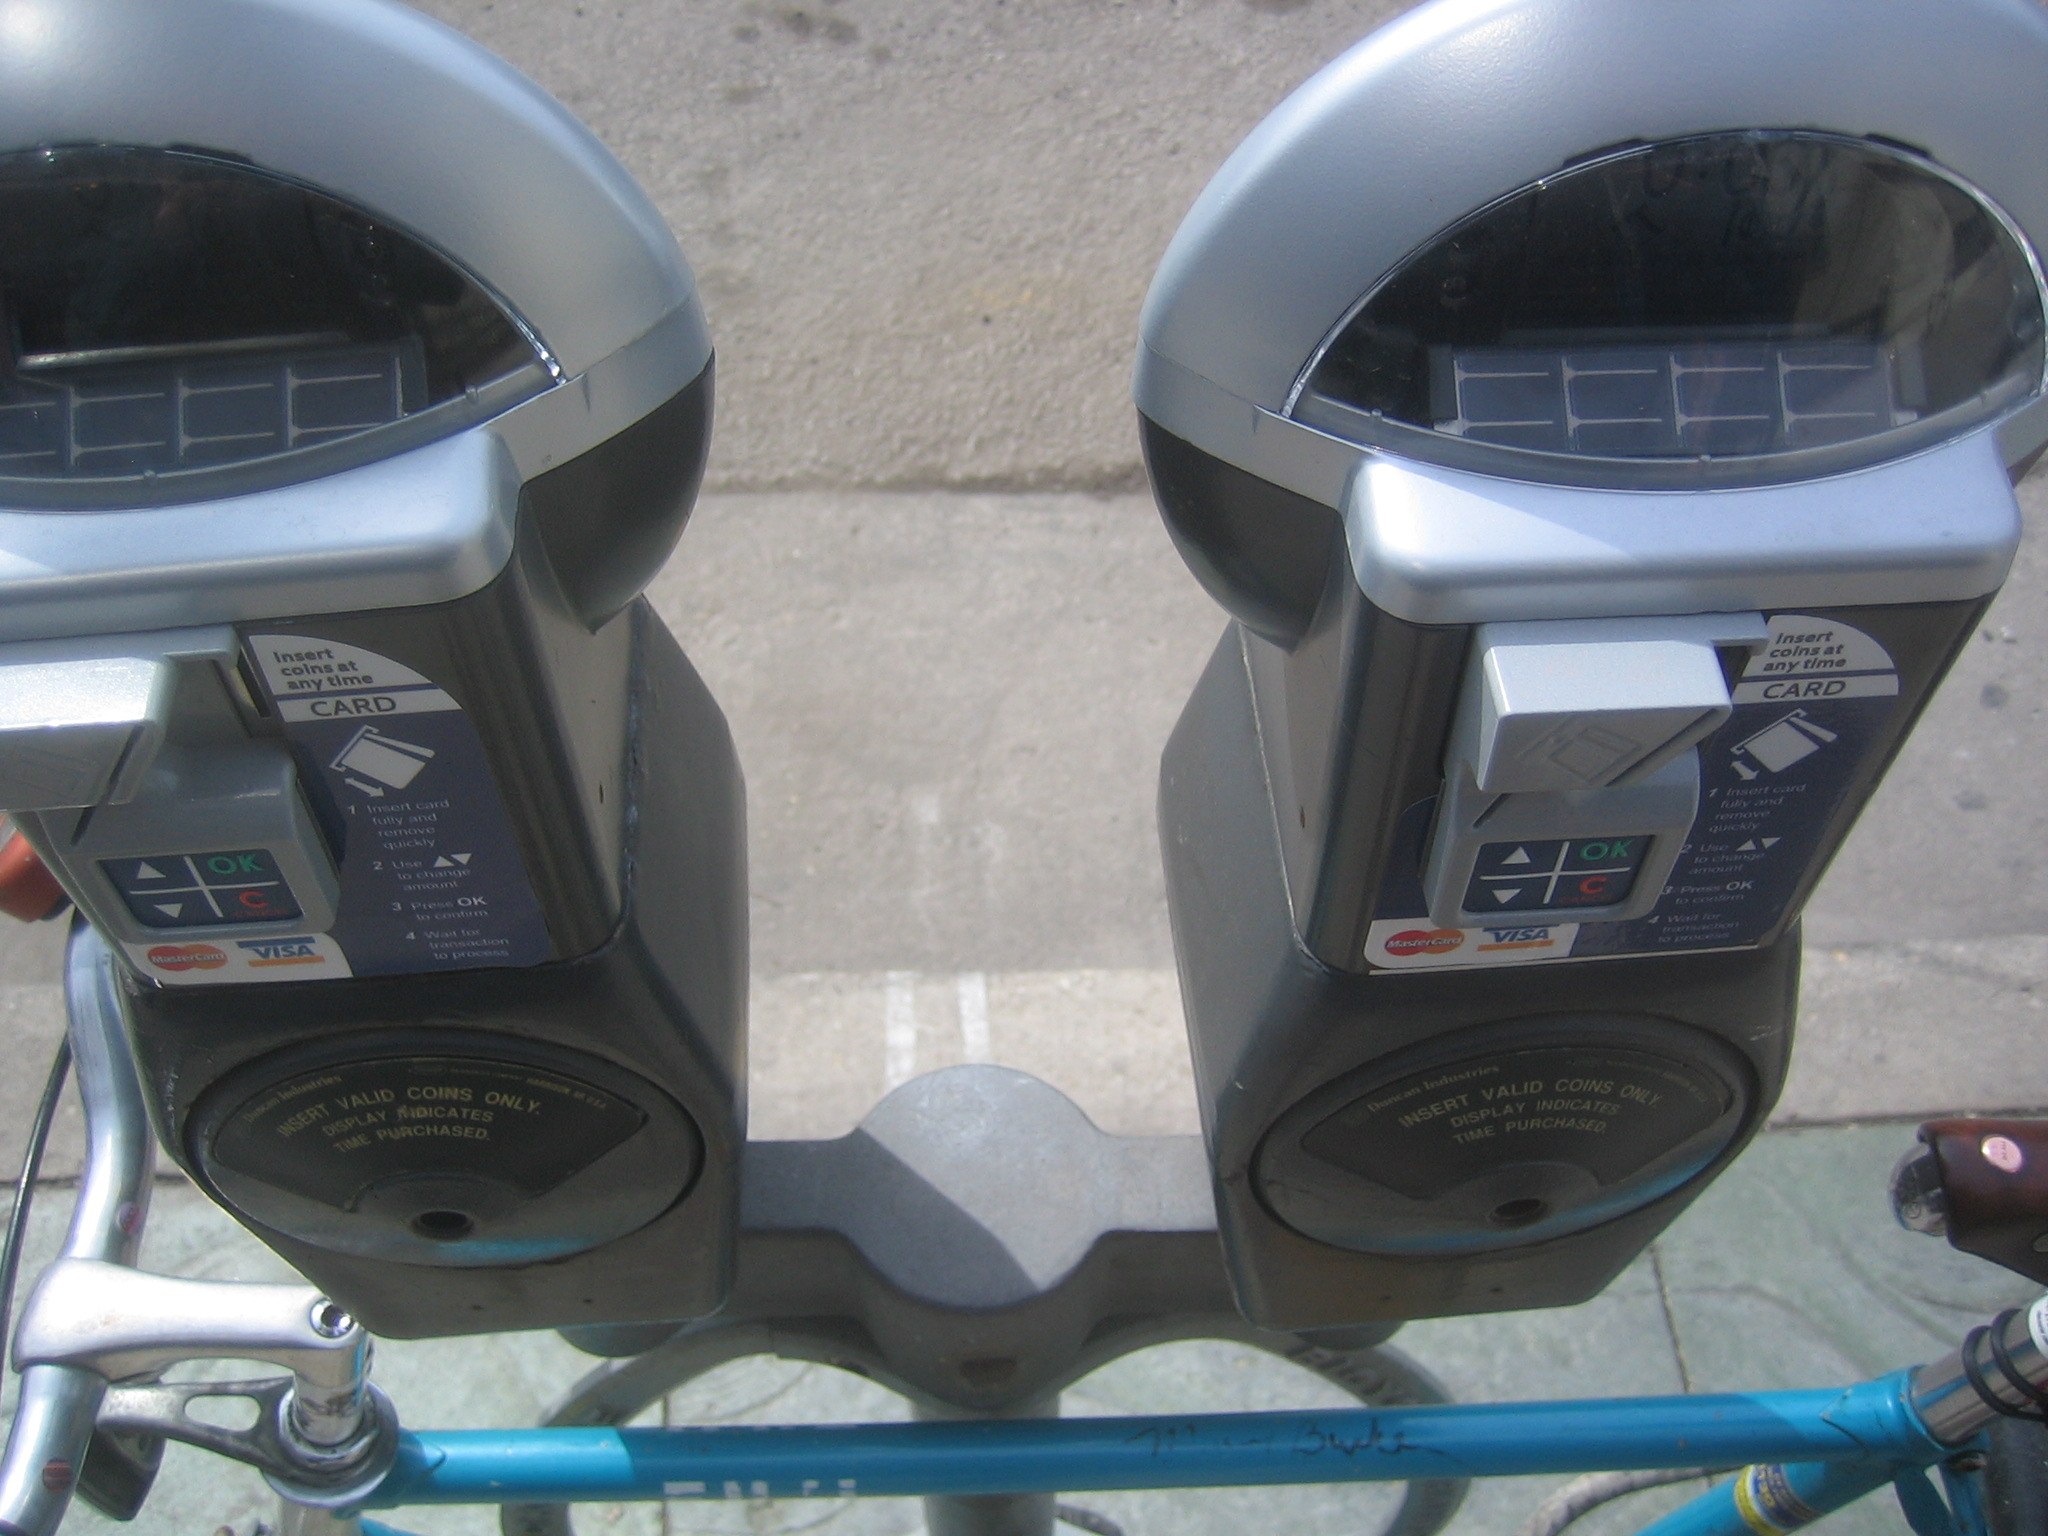 Downtown Activates 11 Metered Parking Spaces for One-Day Event Tomorrow